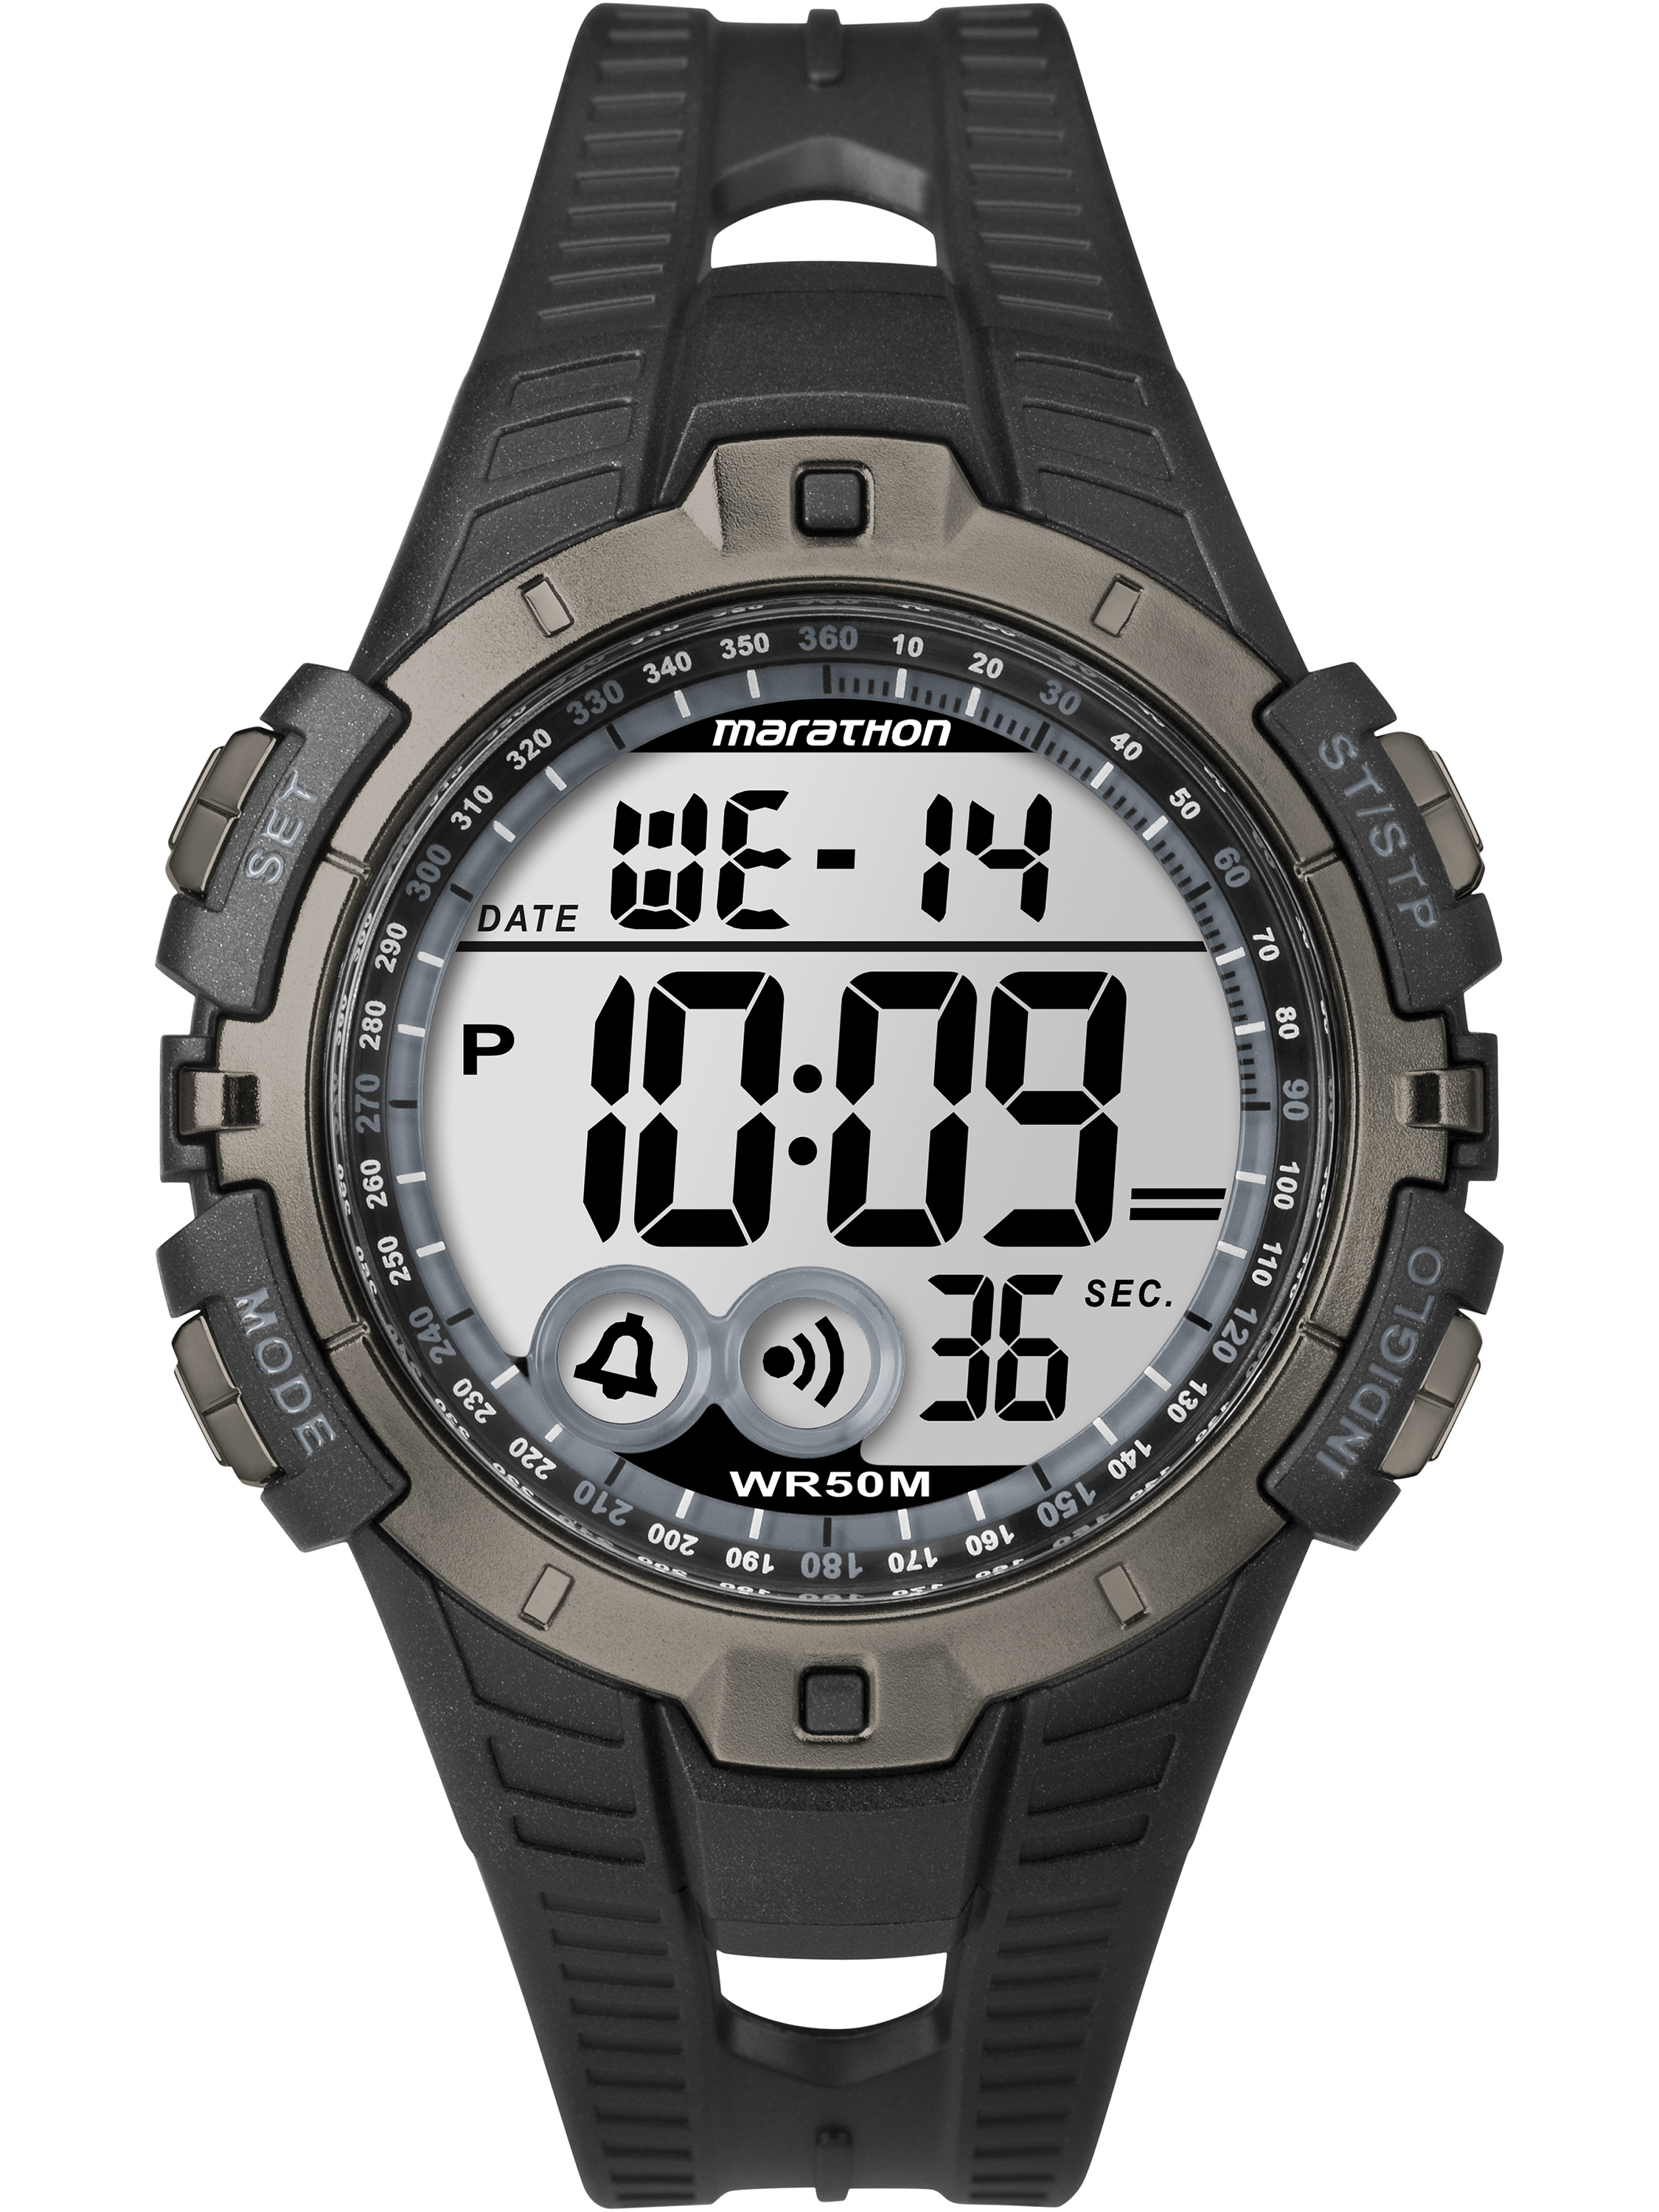 Marathon Men's Digital Full-Size Watch, Black Resin Strap